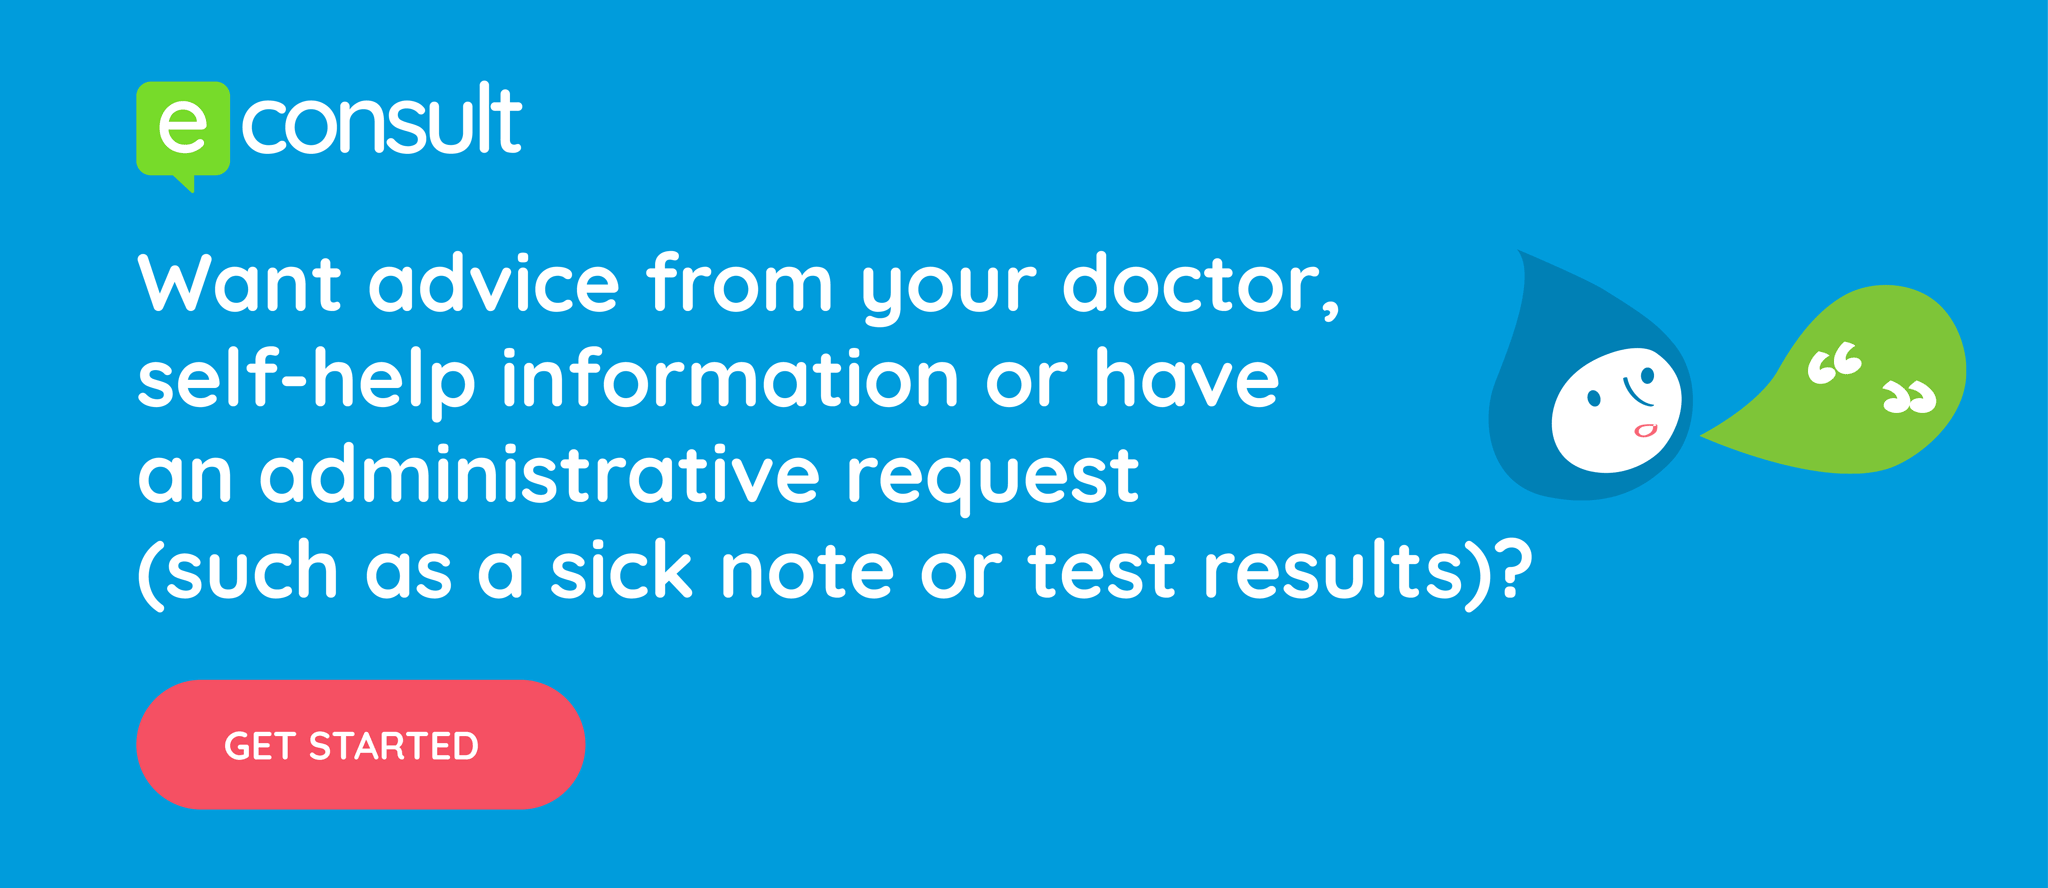 Want advice from your doctor, self help information or have and administrative request? Get started with eConsult.